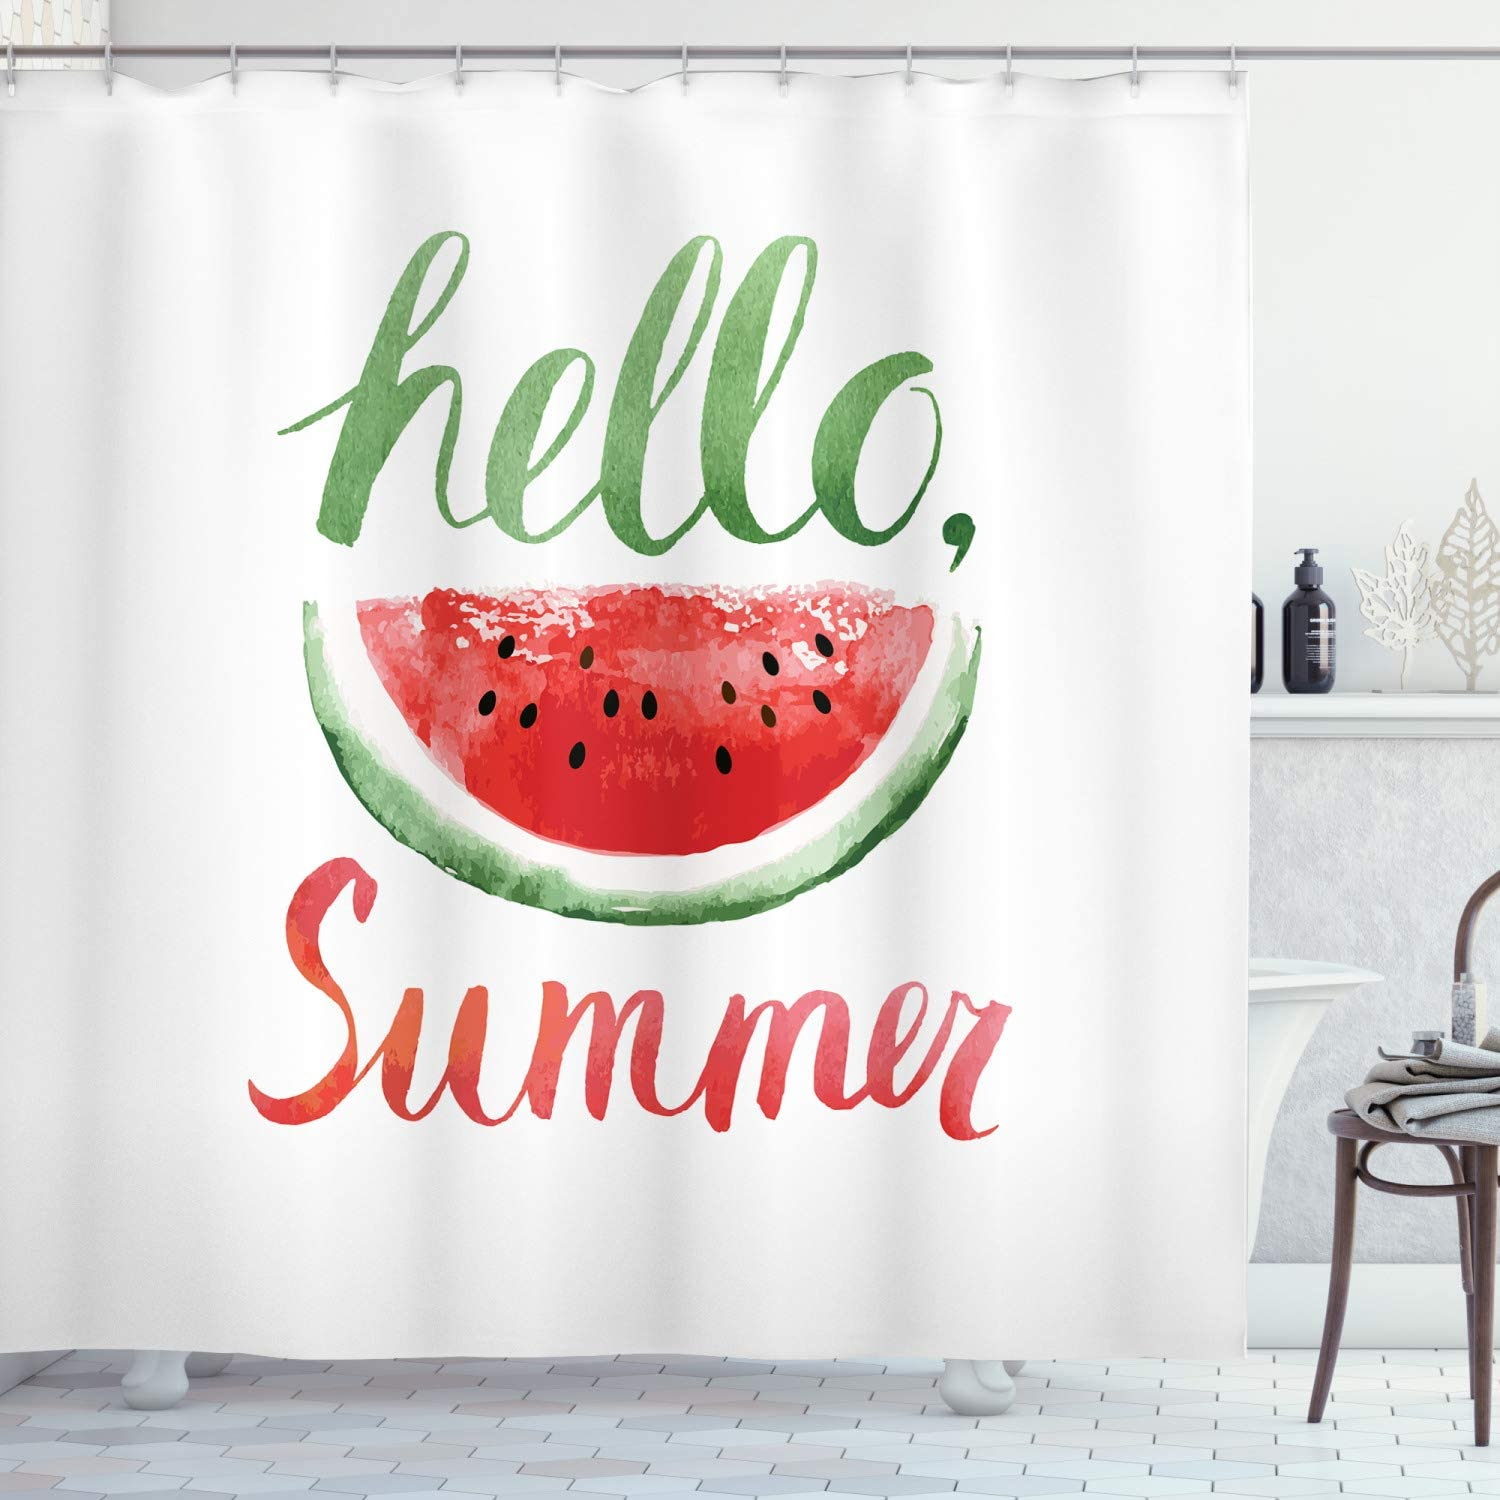 Ambesonne Summer Shower Curtain, Watermelon Calligraphy Fruit Fresh and Healthy Food Summer, Cloth Fabric Bathroom Decor Set with Hooks, 75